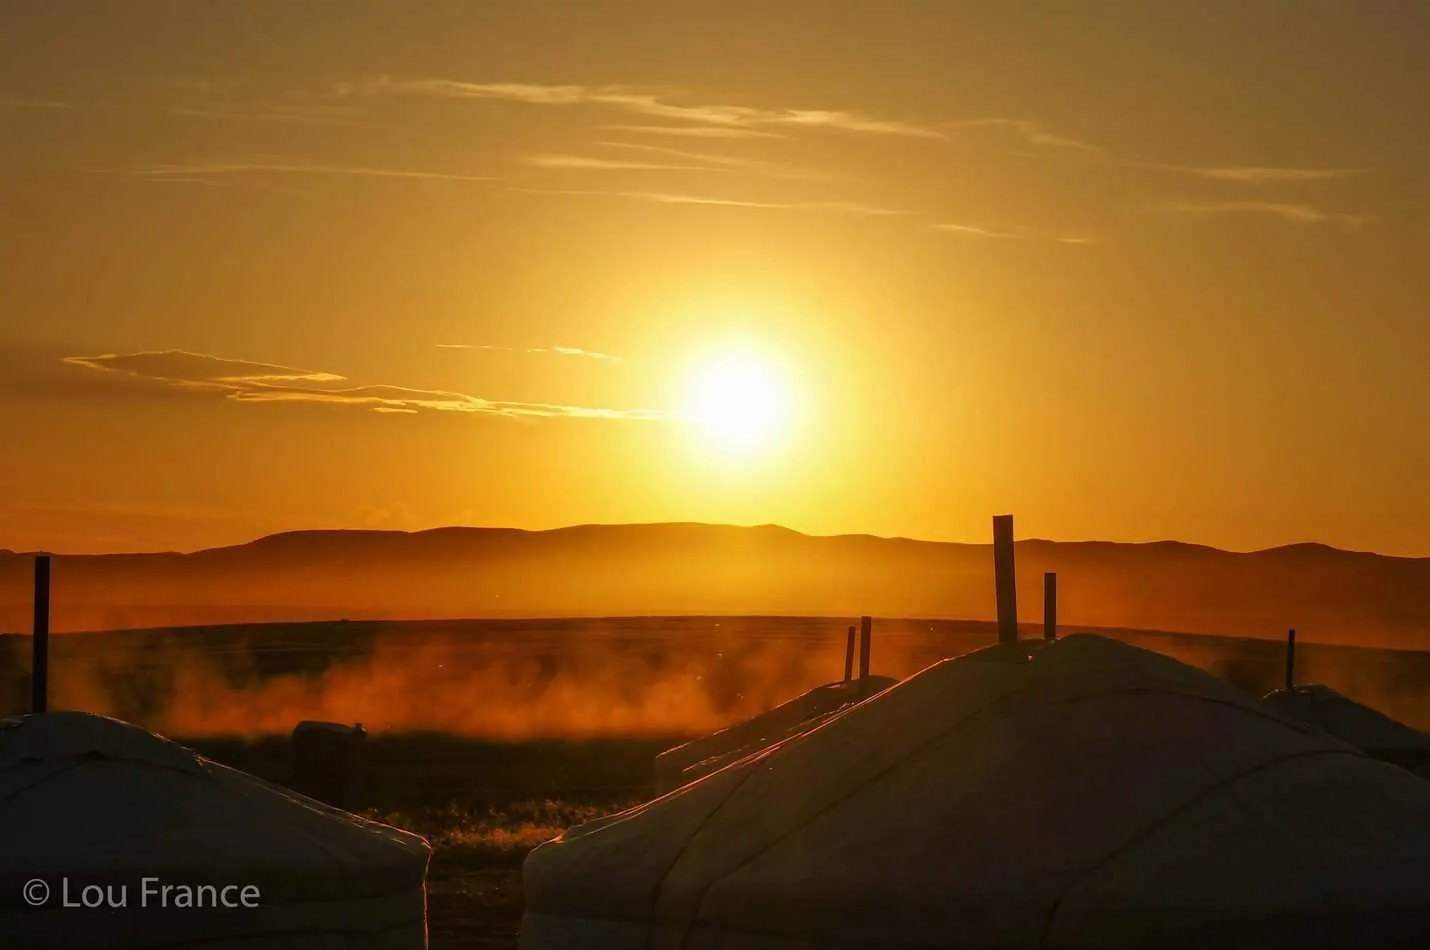 A Crazy Mongolia Travel Blog Tale